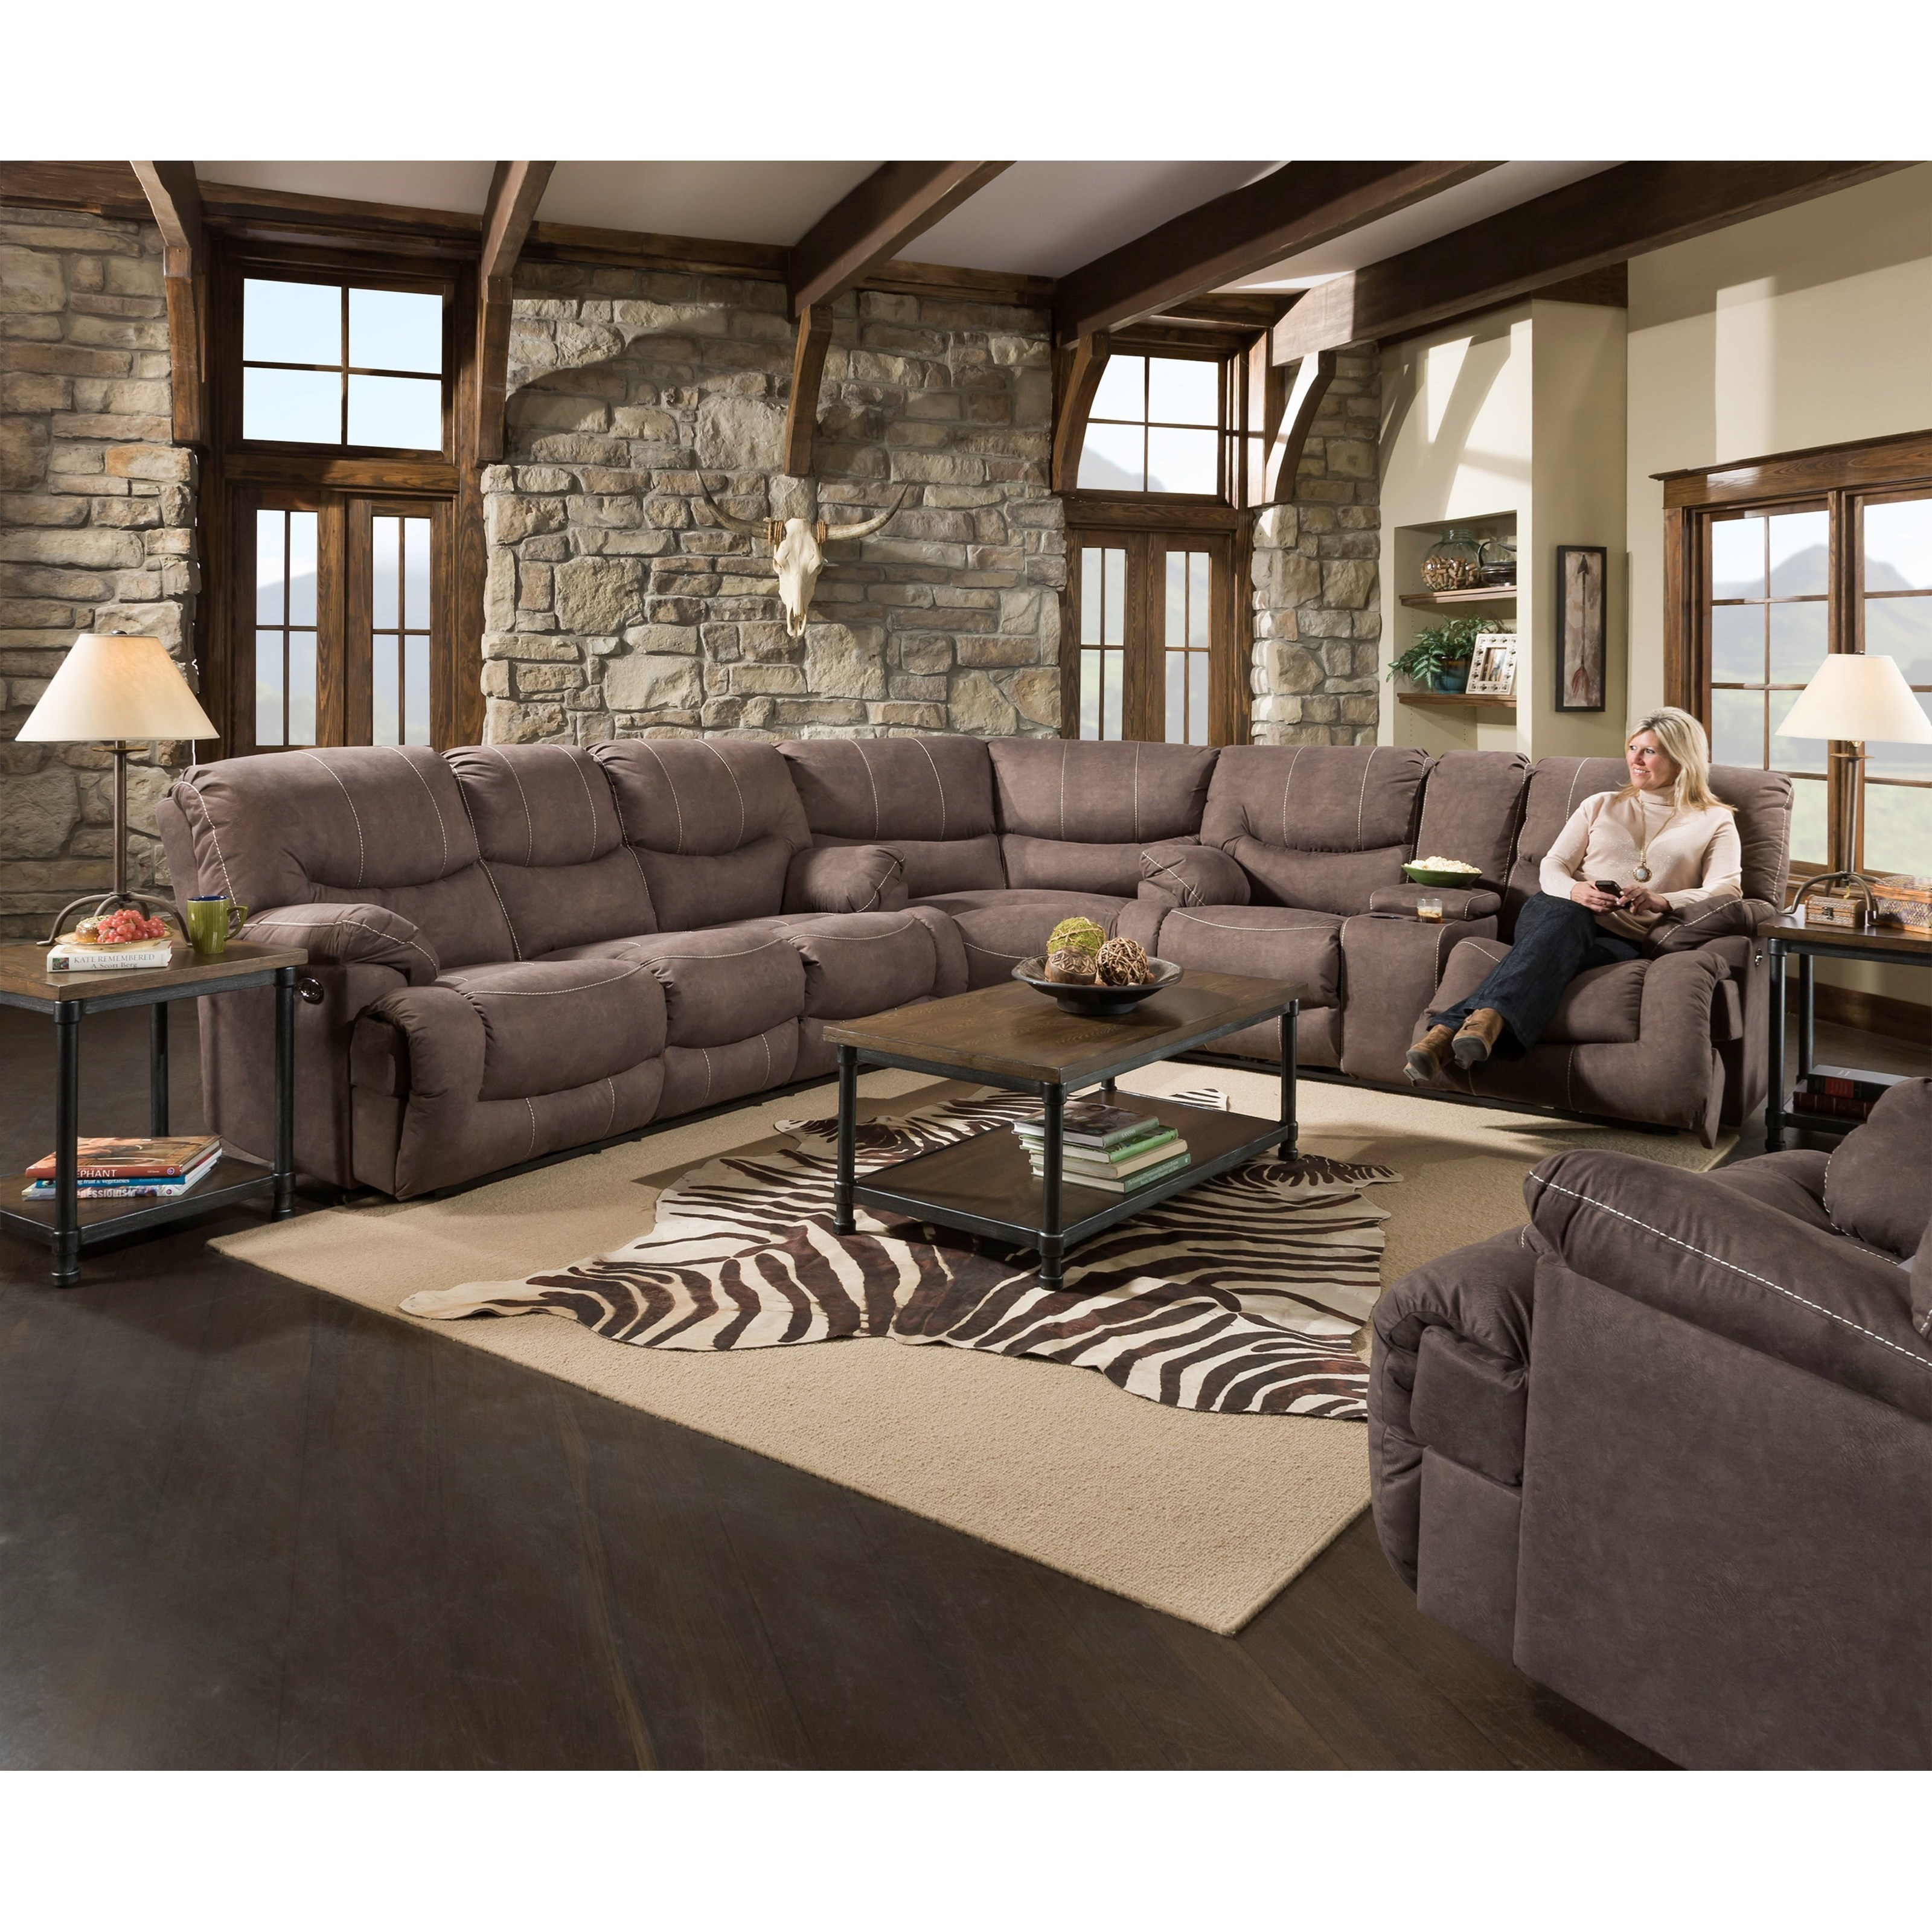 50455BR 3-Piece Power Reclining Sectional by United Furniture Industries at Bullard Furniture